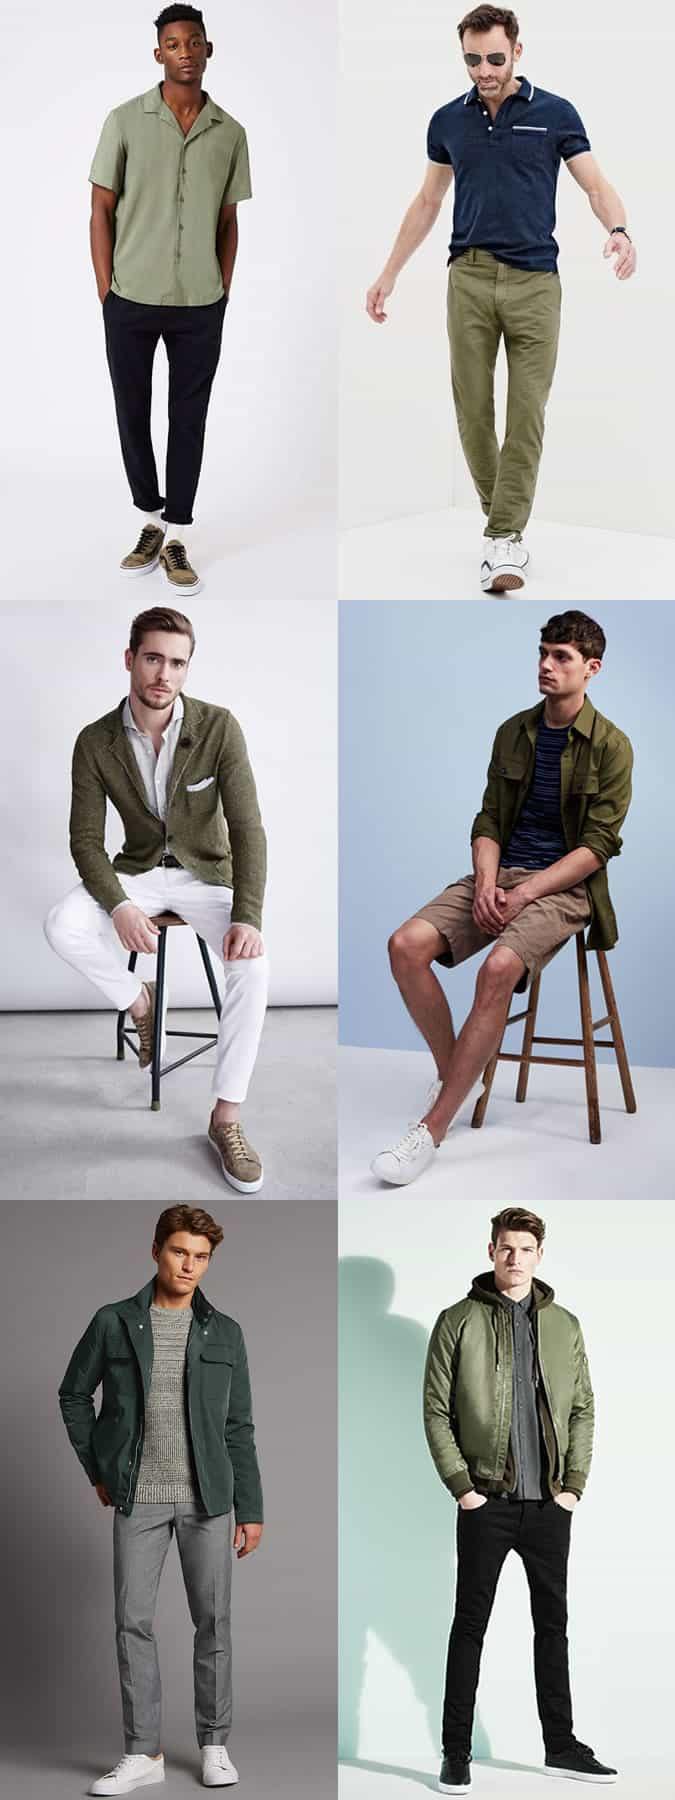 Men's How To Wear Green Outfit Inspiration Lookbook